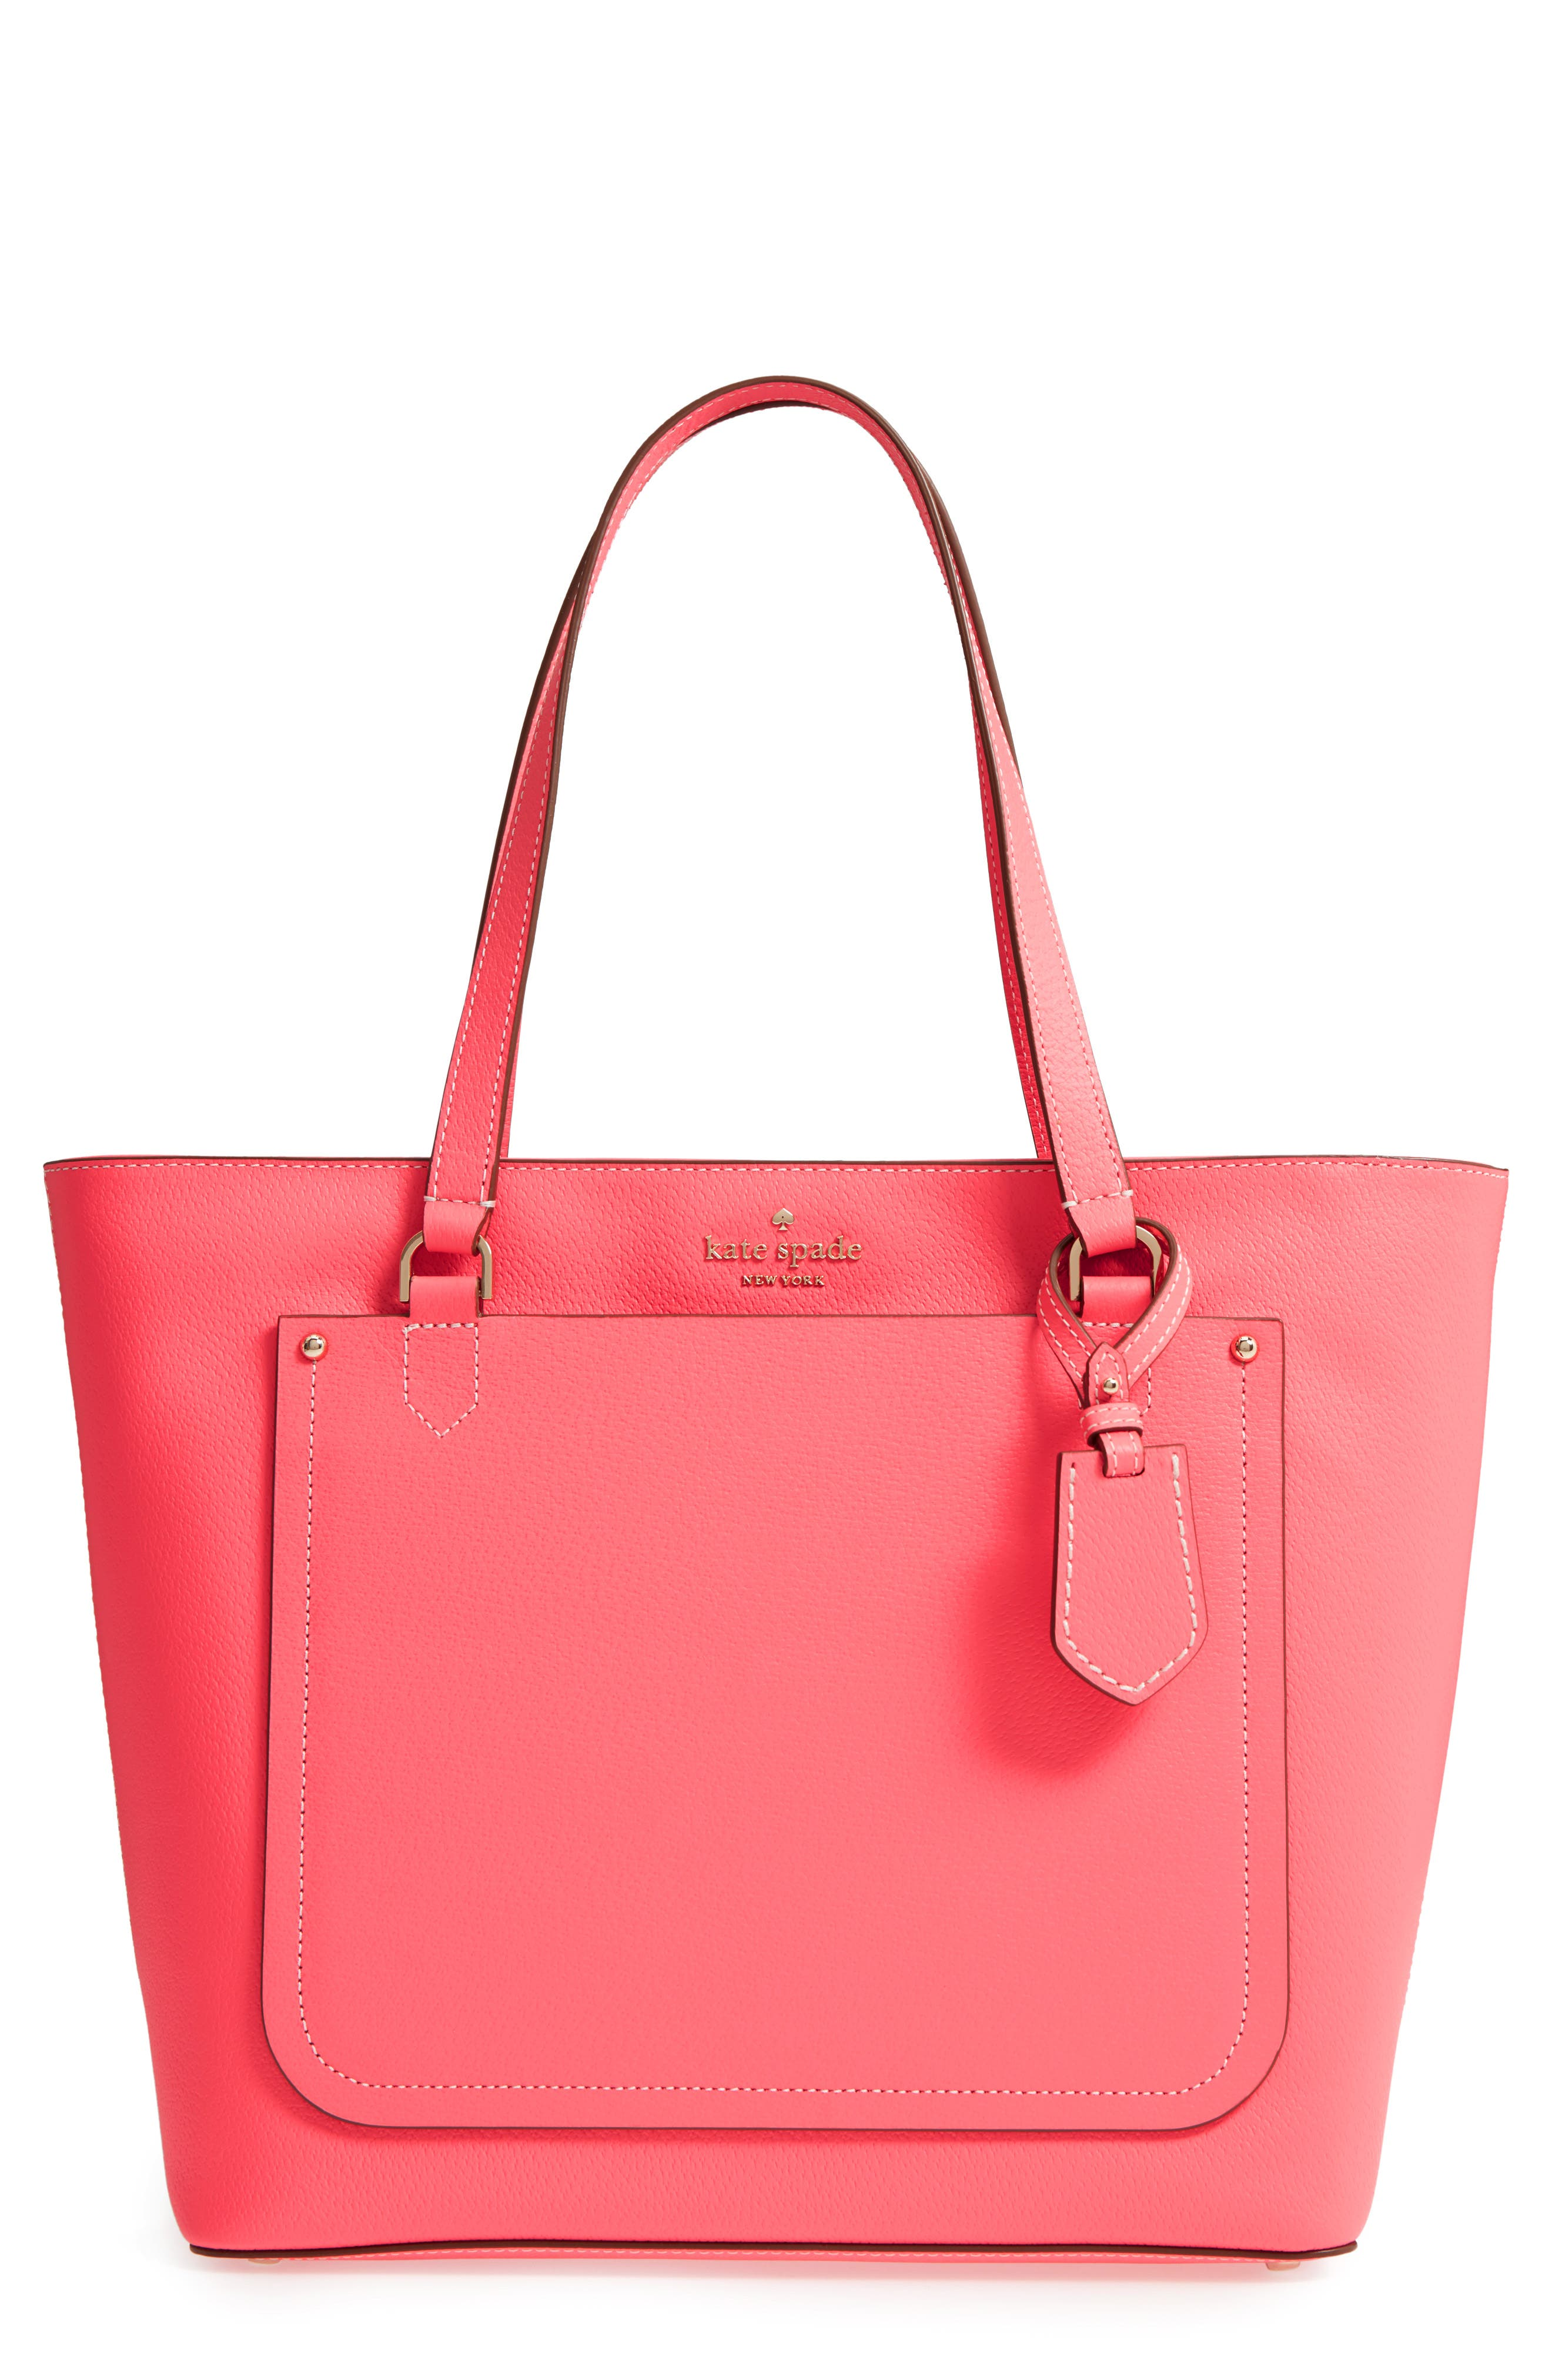 thompson street - kimberly leather tote,                             Main thumbnail 1, color,                             BRIGHT FLAMINGO